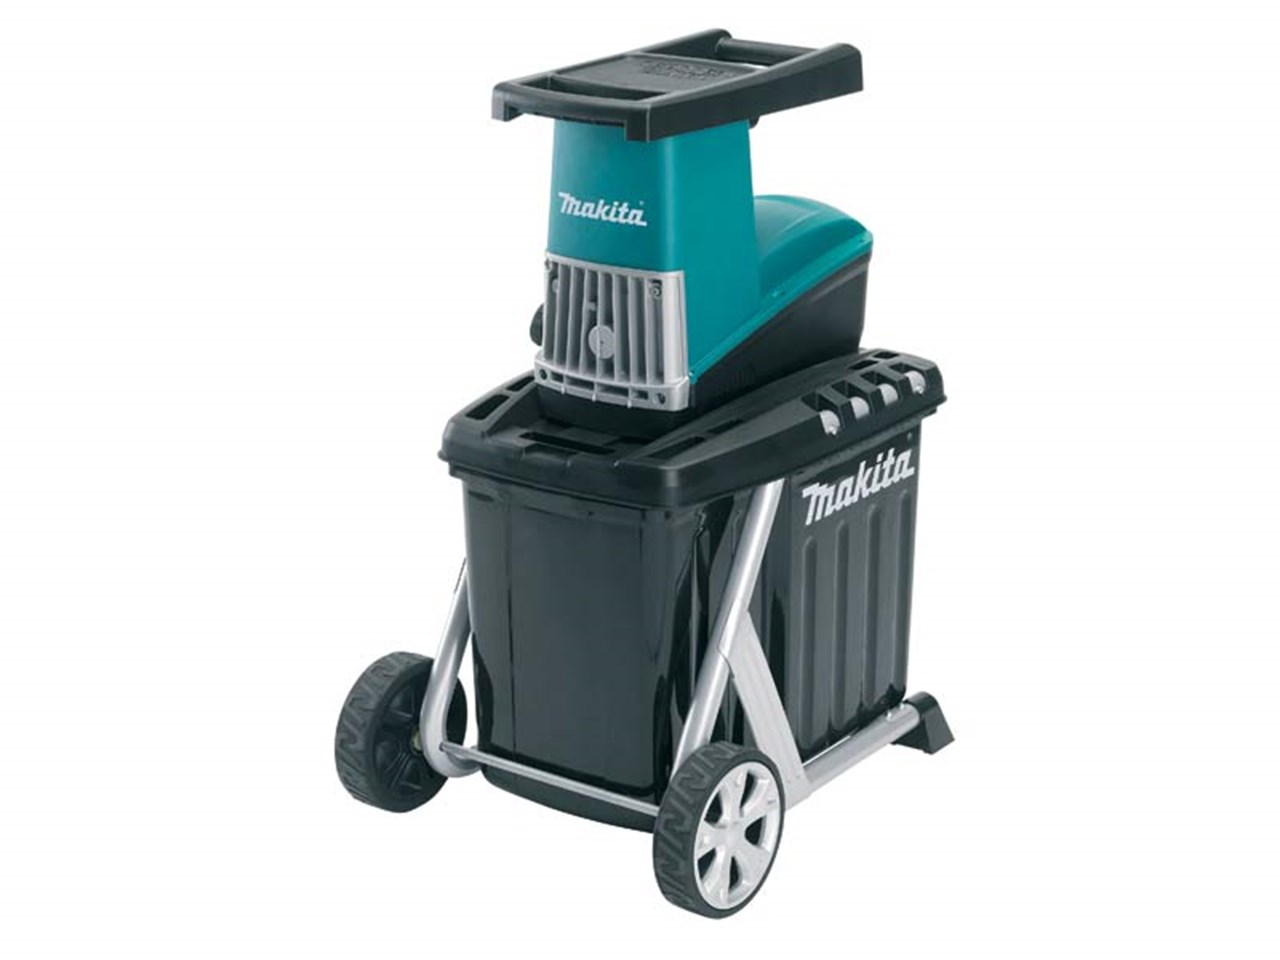 makita ud2500 230v 2500w electric shredder. Black Bedroom Furniture Sets. Home Design Ideas